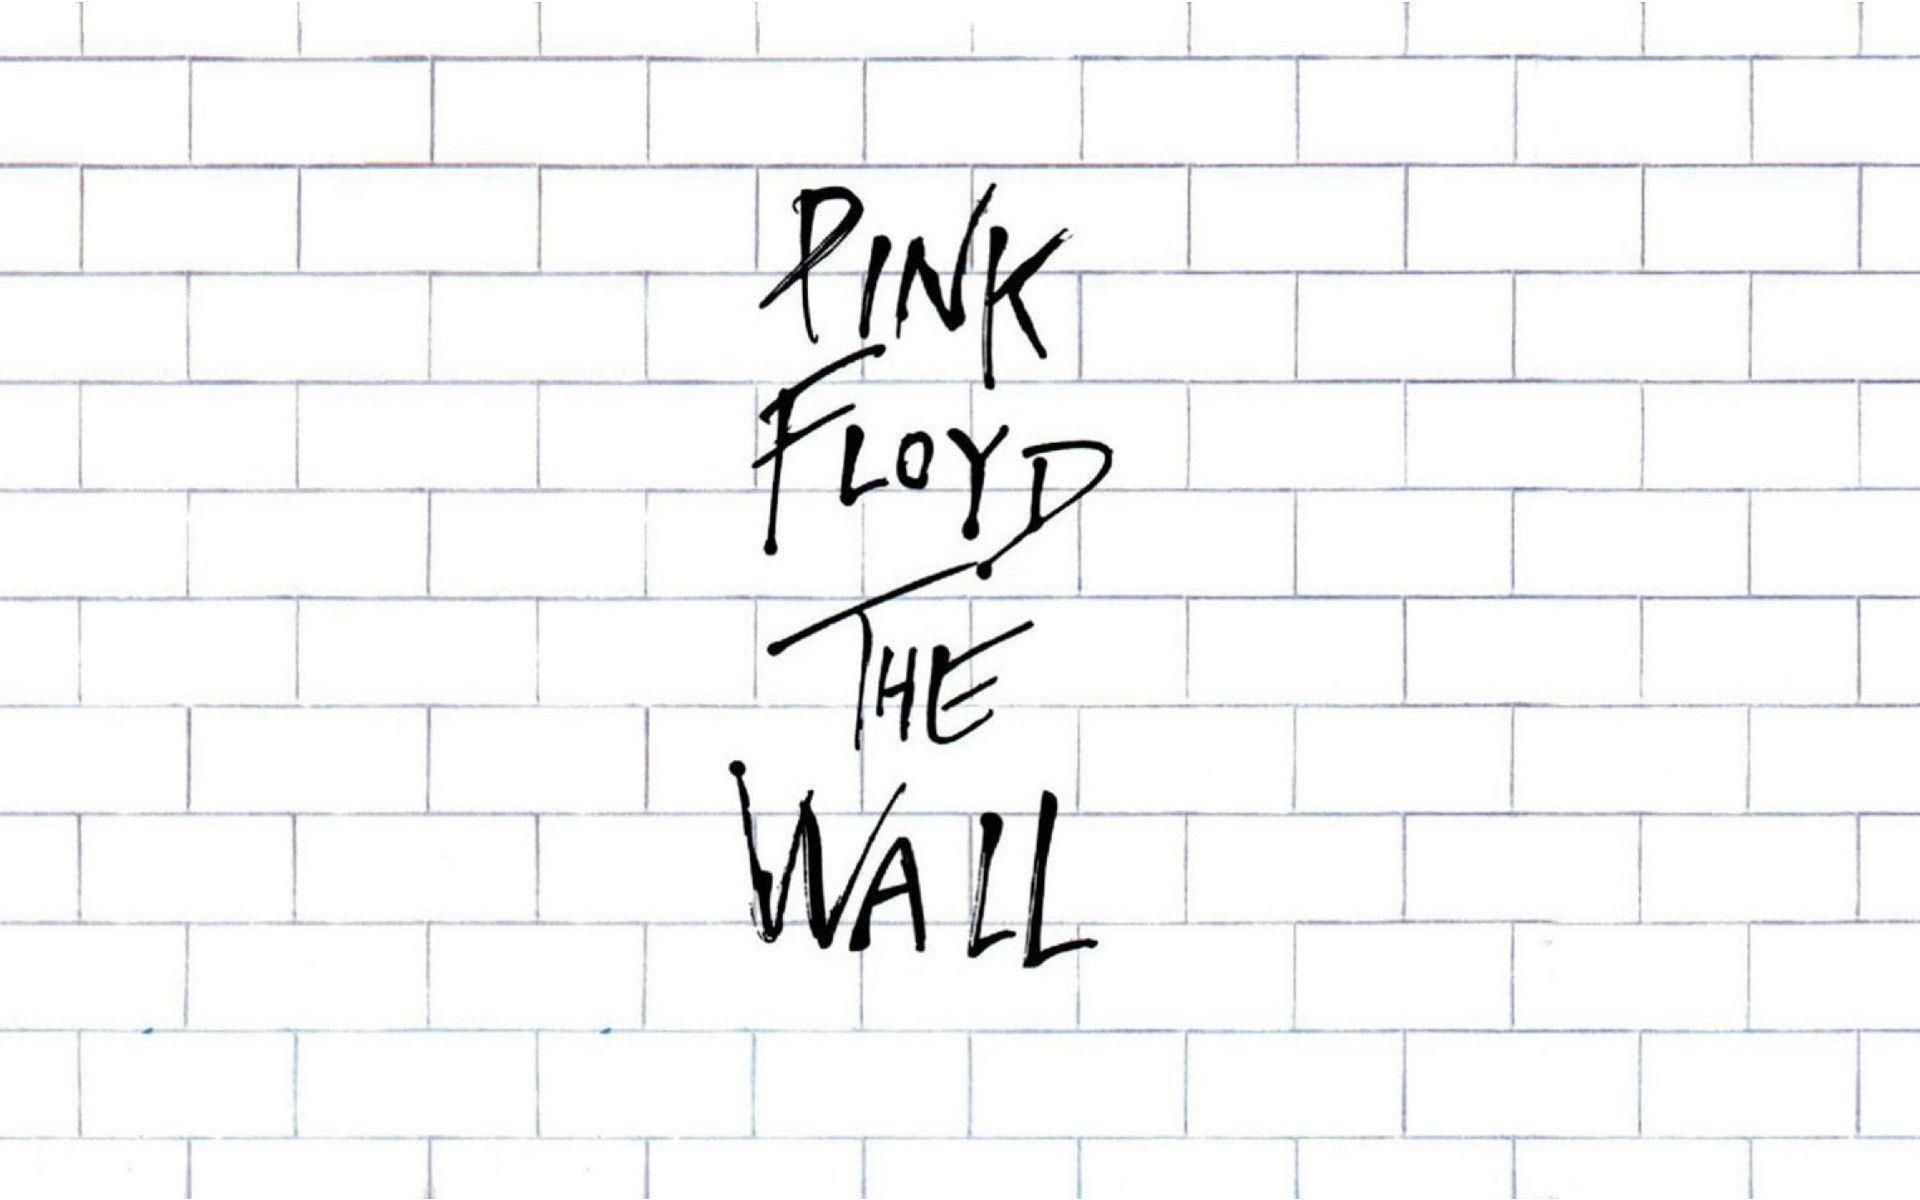 10 Latest The Wall Pink Floyd Wallpaper Full Hd 1080p For Pc Desktop In 2020 Pink Floyd Wallpaper Pink Floyd Albums Pink Floyd Album Covers